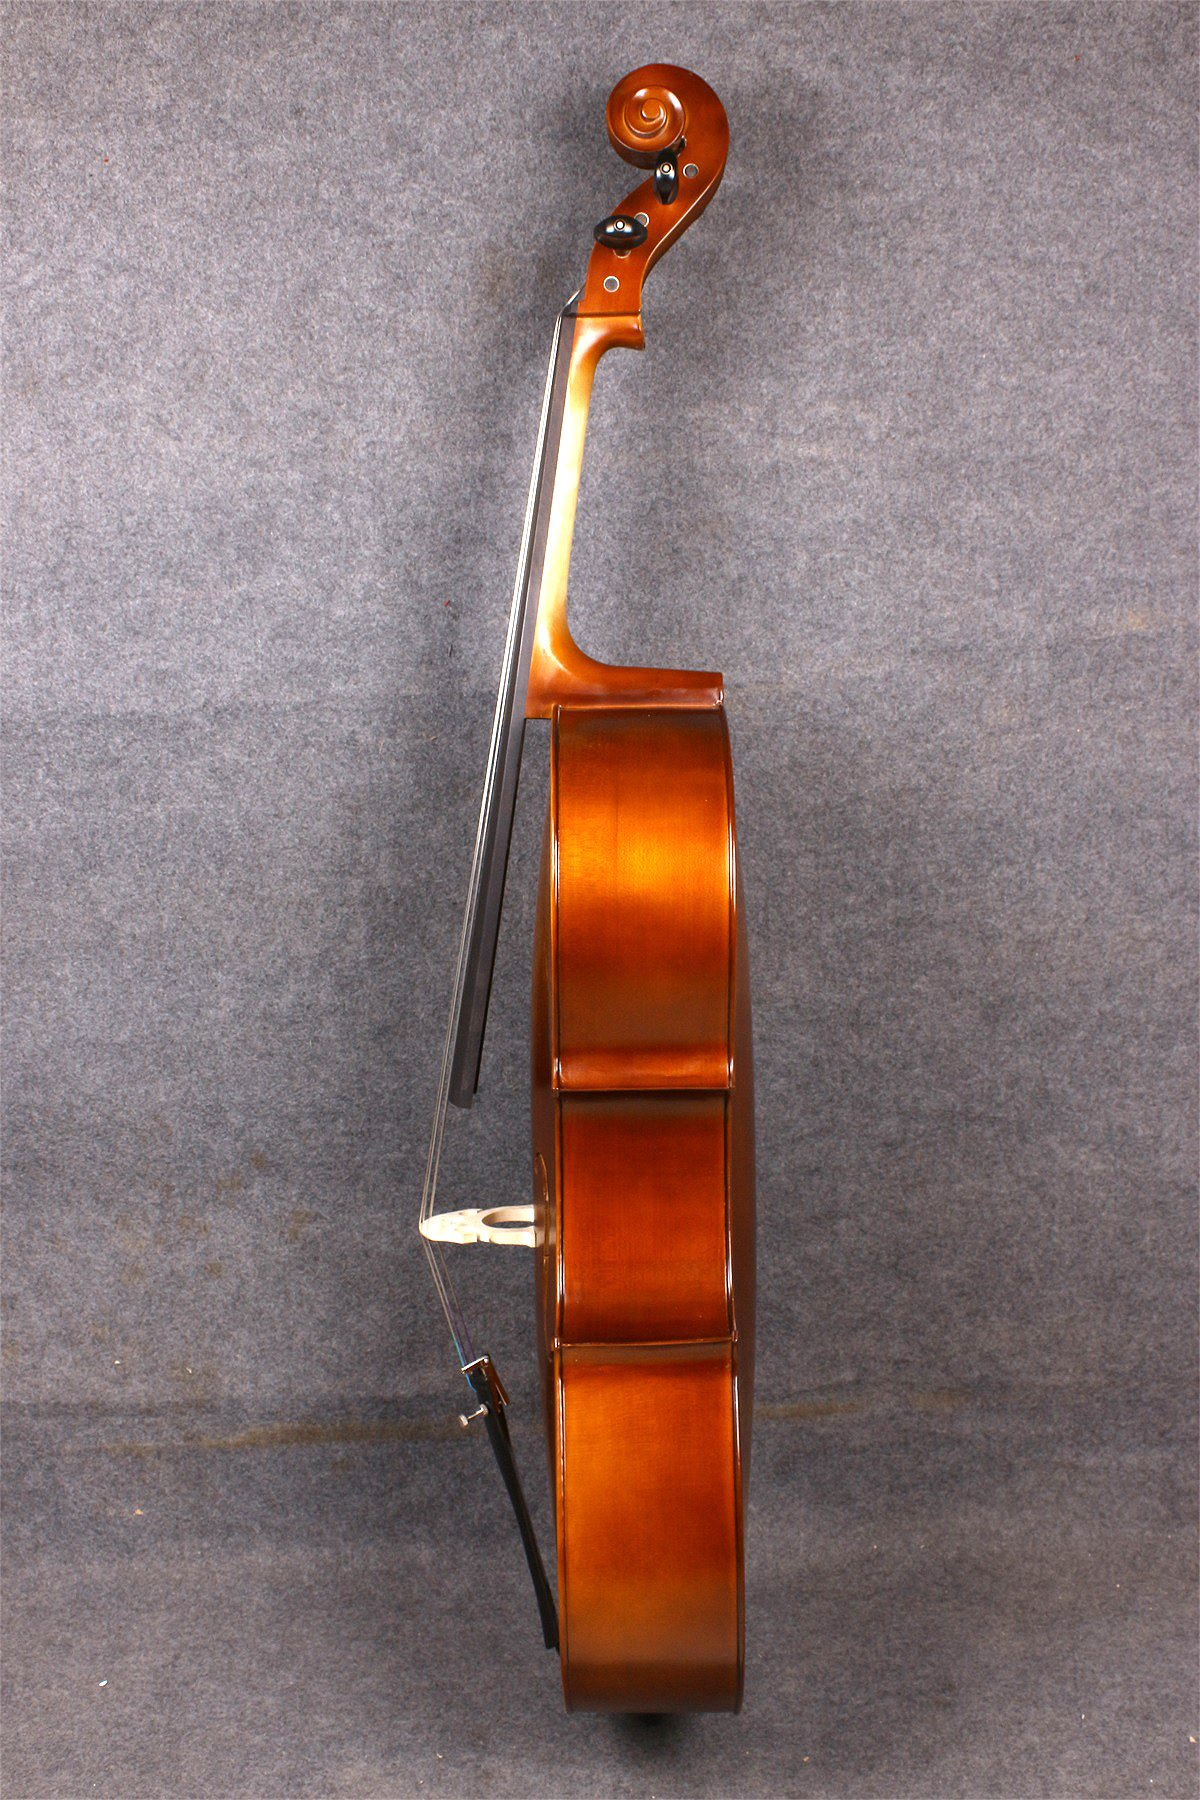 Yinfente 4/4 5 String Cello Acoustic Model Full size Spruce Maple wood Free Cello bow Bag Sweet Sound by yinfente (Image #2)